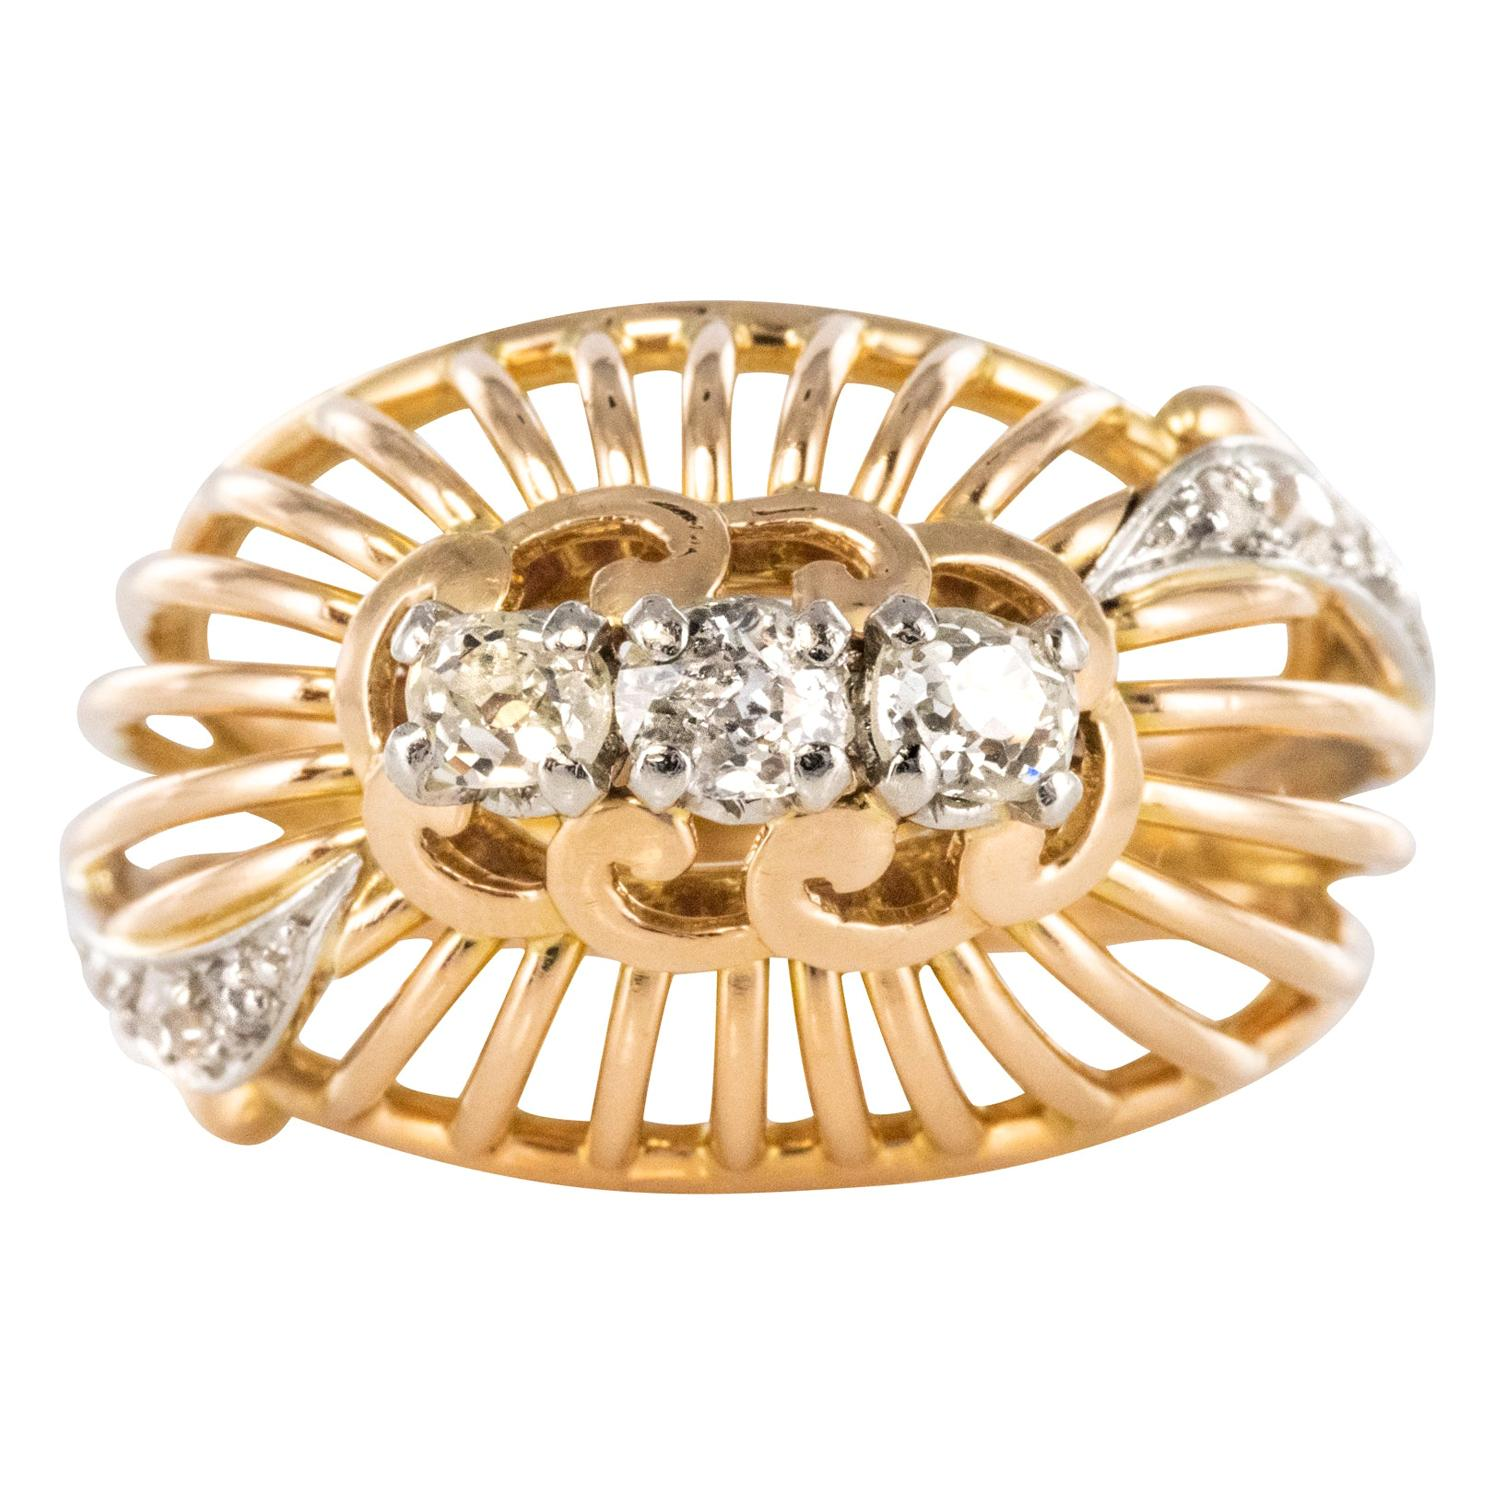 French 1960s Diamond 18 Karat Yellow Gold Thread Dome Ring